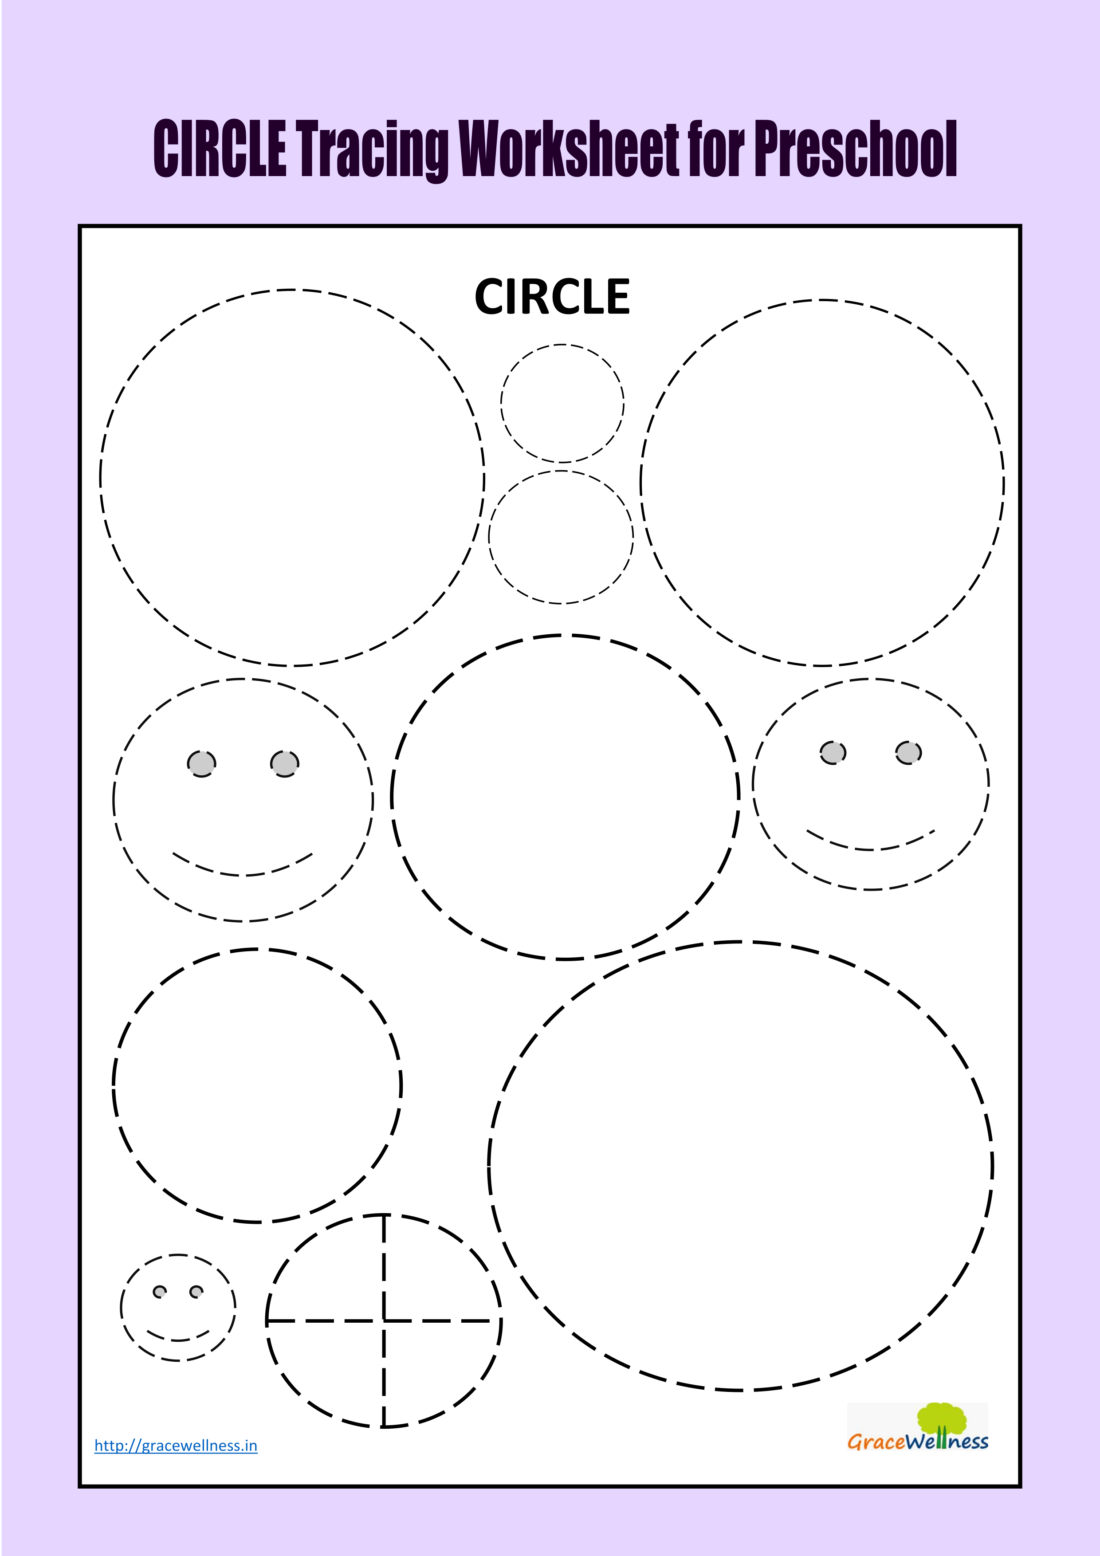 Circle Tracing Worksheet For Preschool | Trace And Color